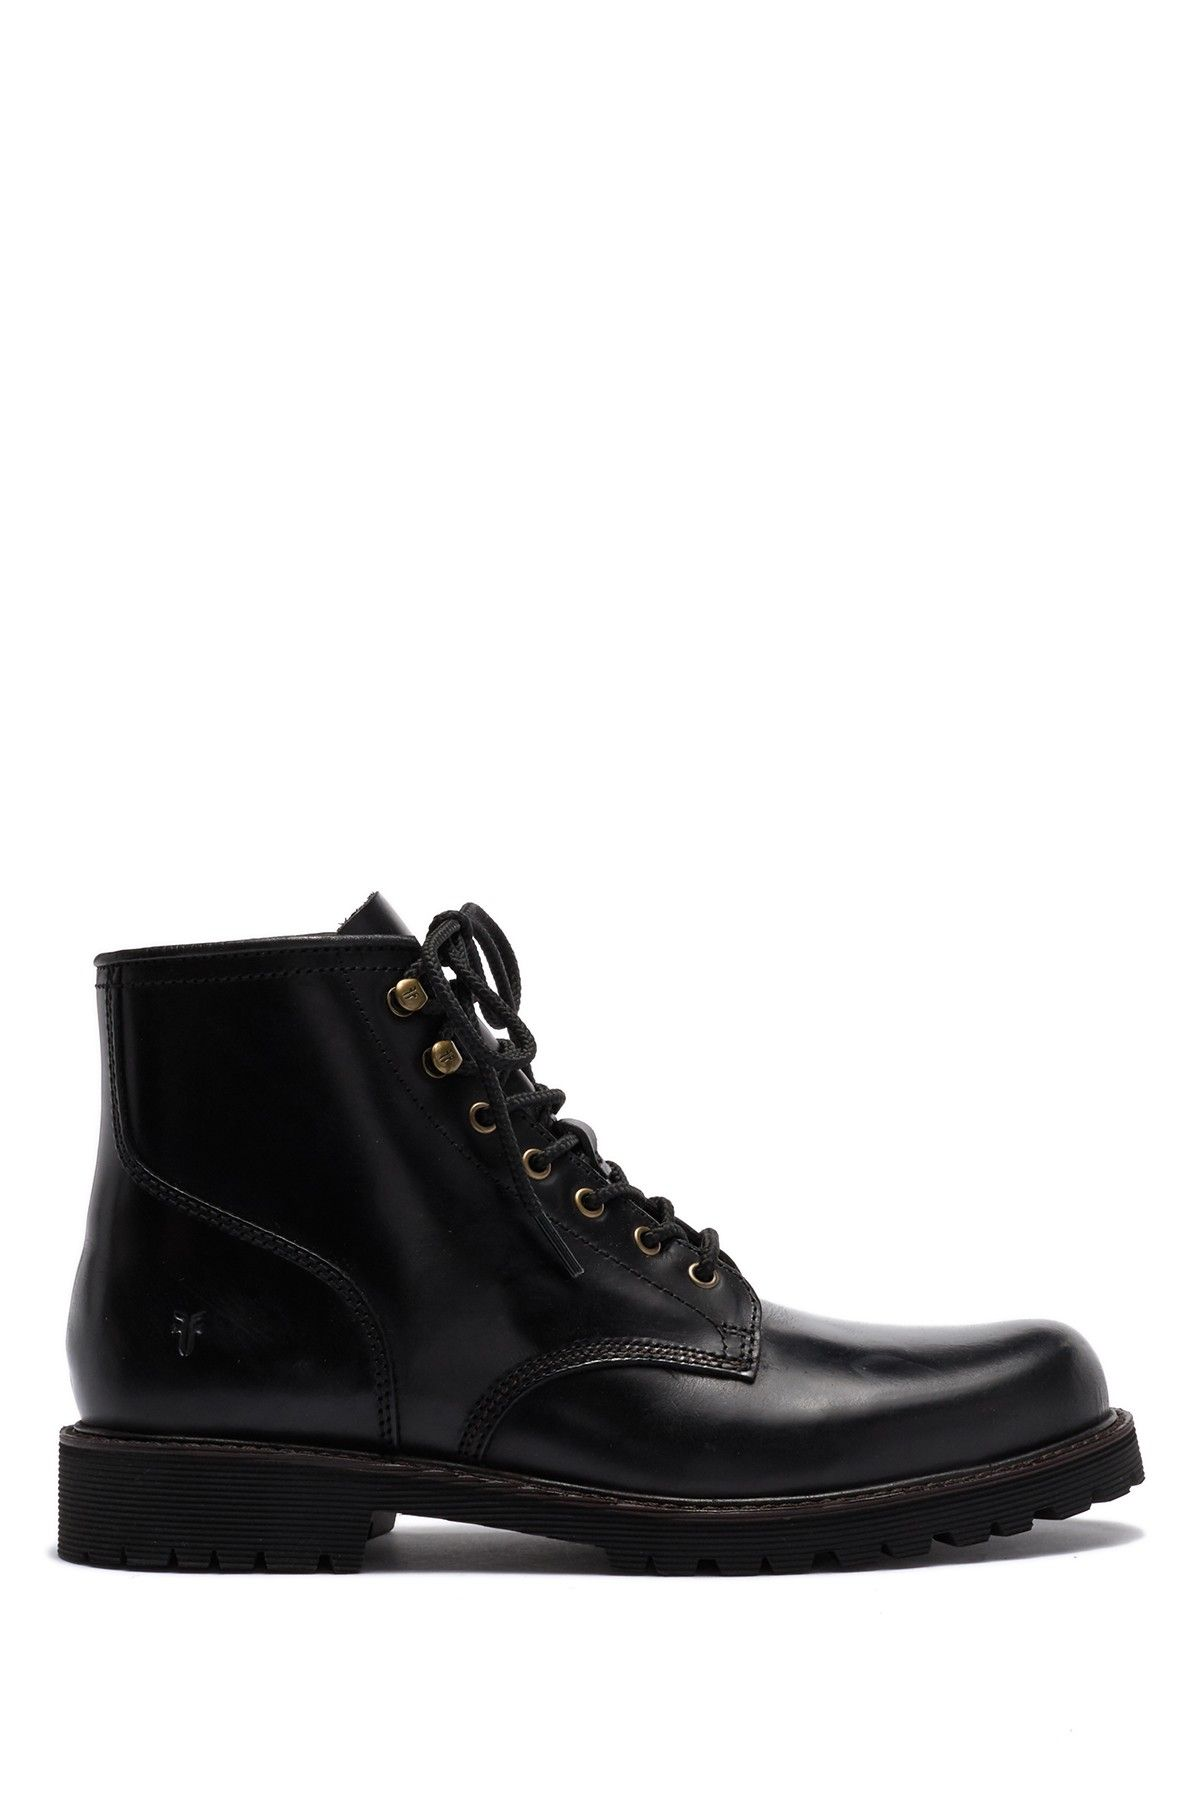 c2e6802f1d8 Frye | Dawson Leather Lug Workboot | shoes | Leather, Nordstrom rack ...